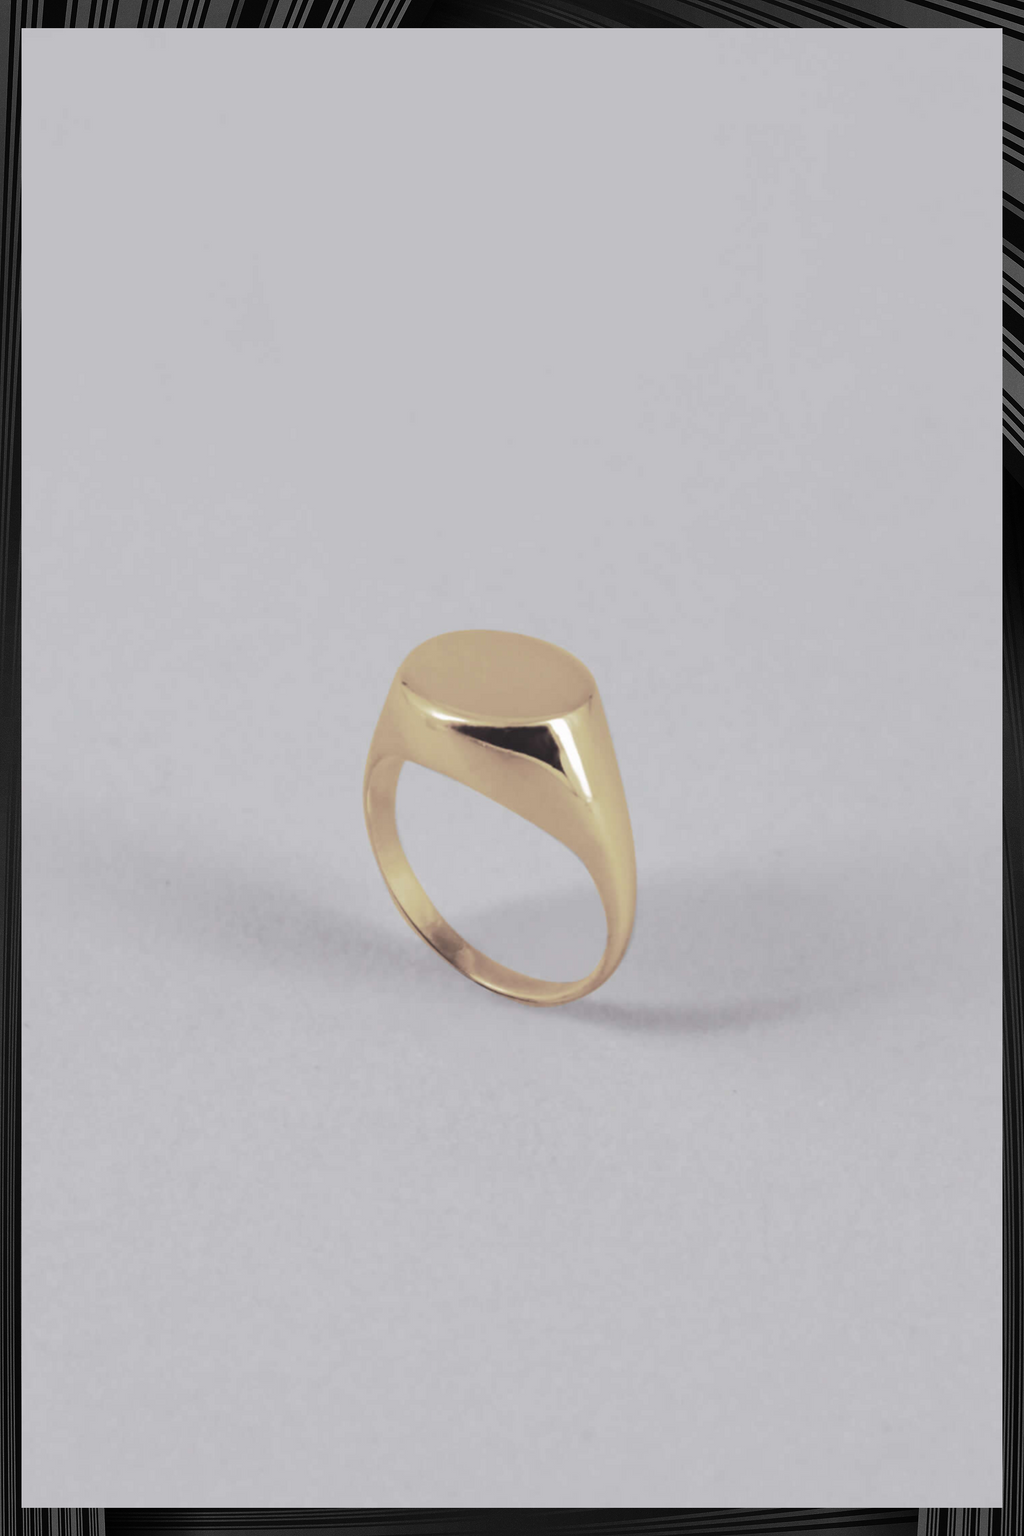 9K Gold Signet Ring | Free Delivery - 4-5 Week Shipping